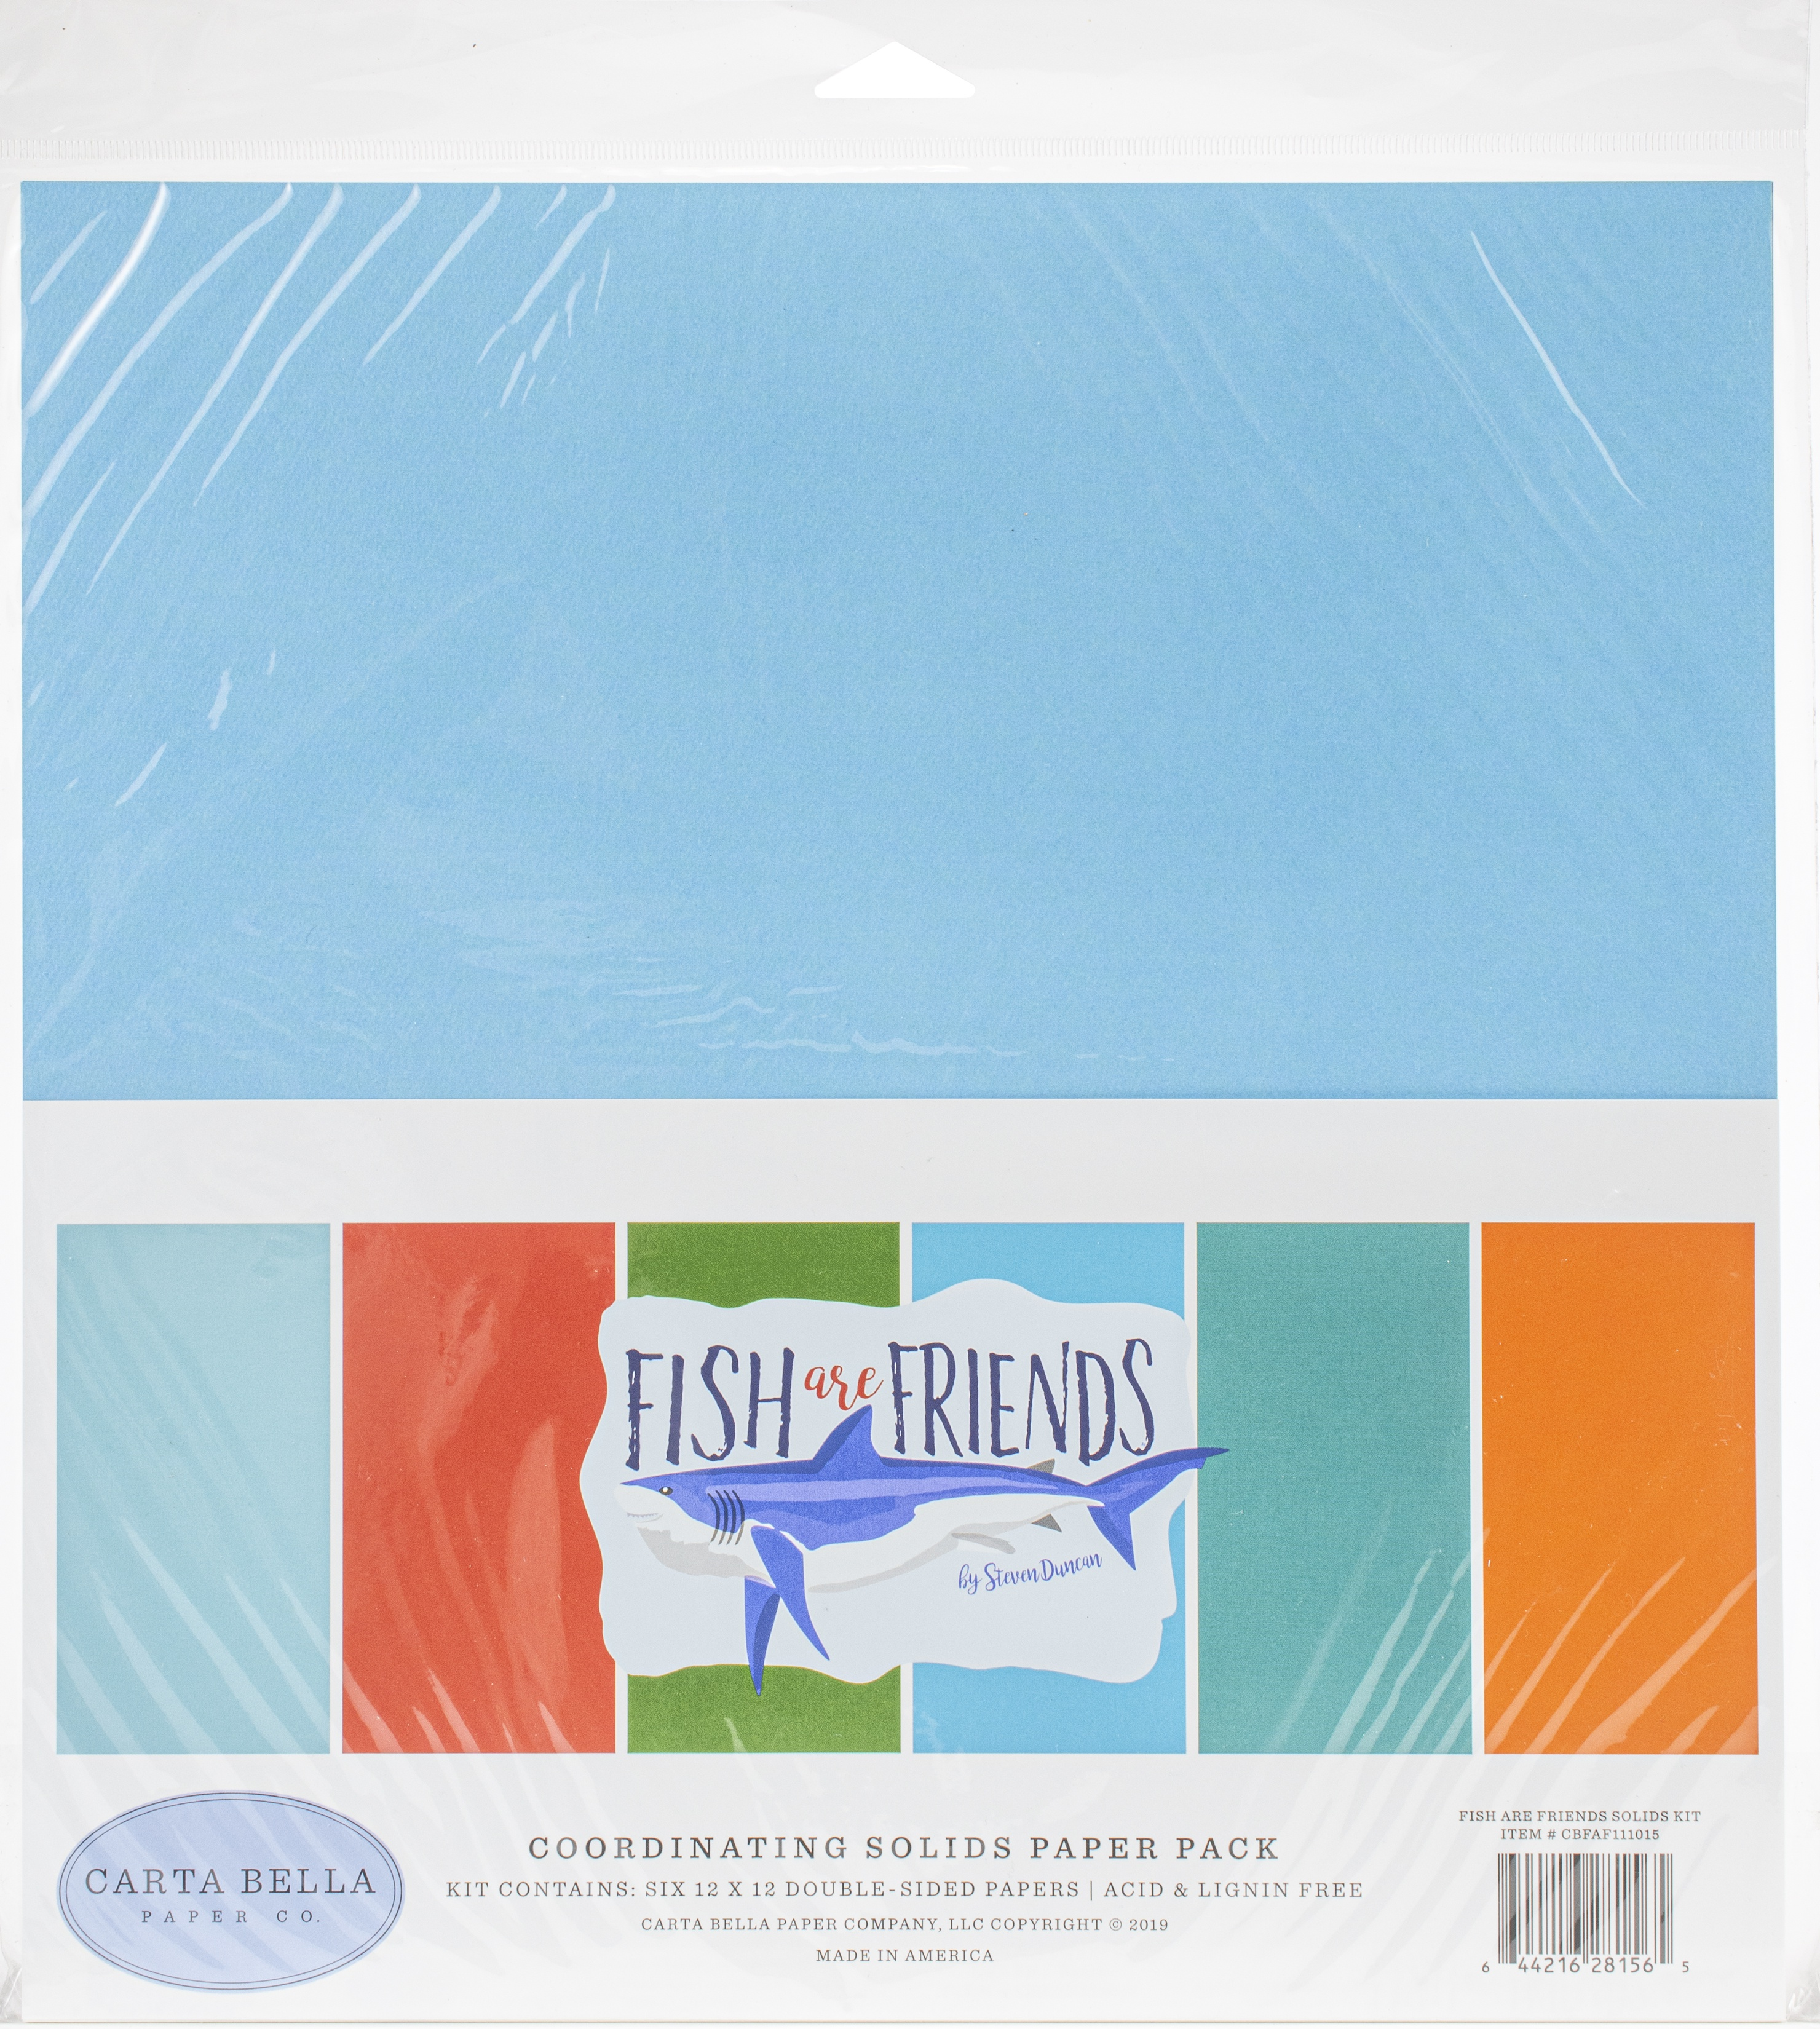 Fish Are Friends Solids Paper Pack